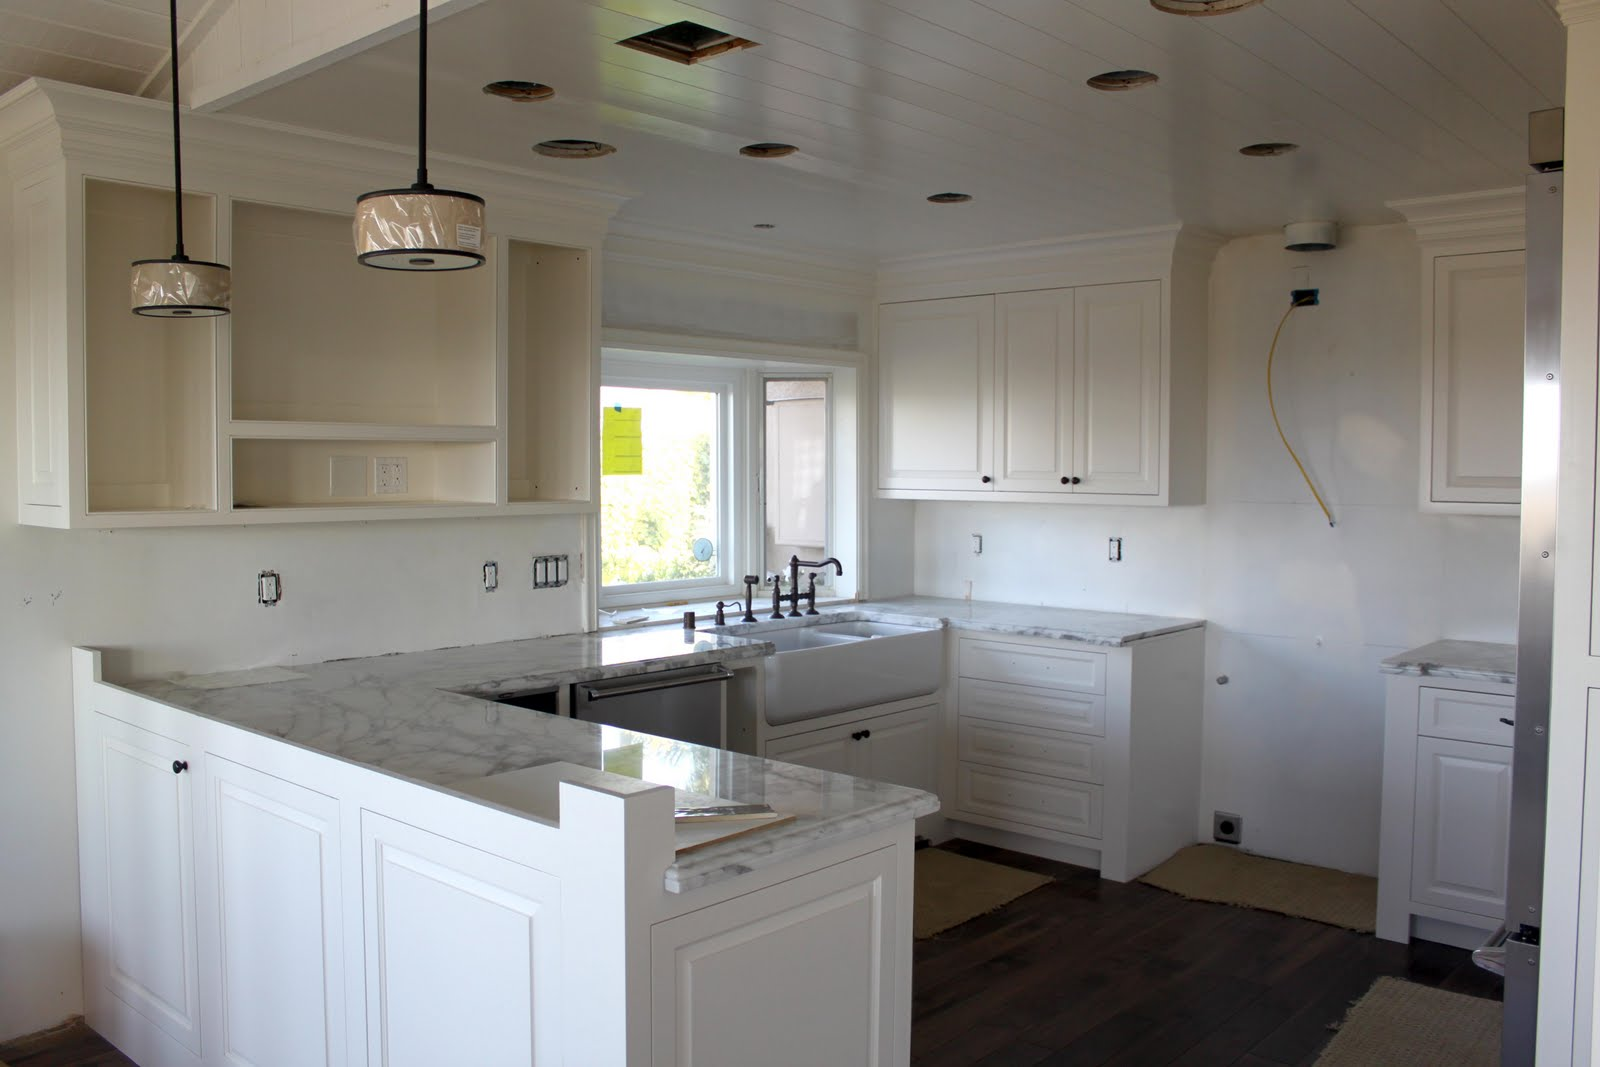 brittany stiles newport beach kitchen remodel